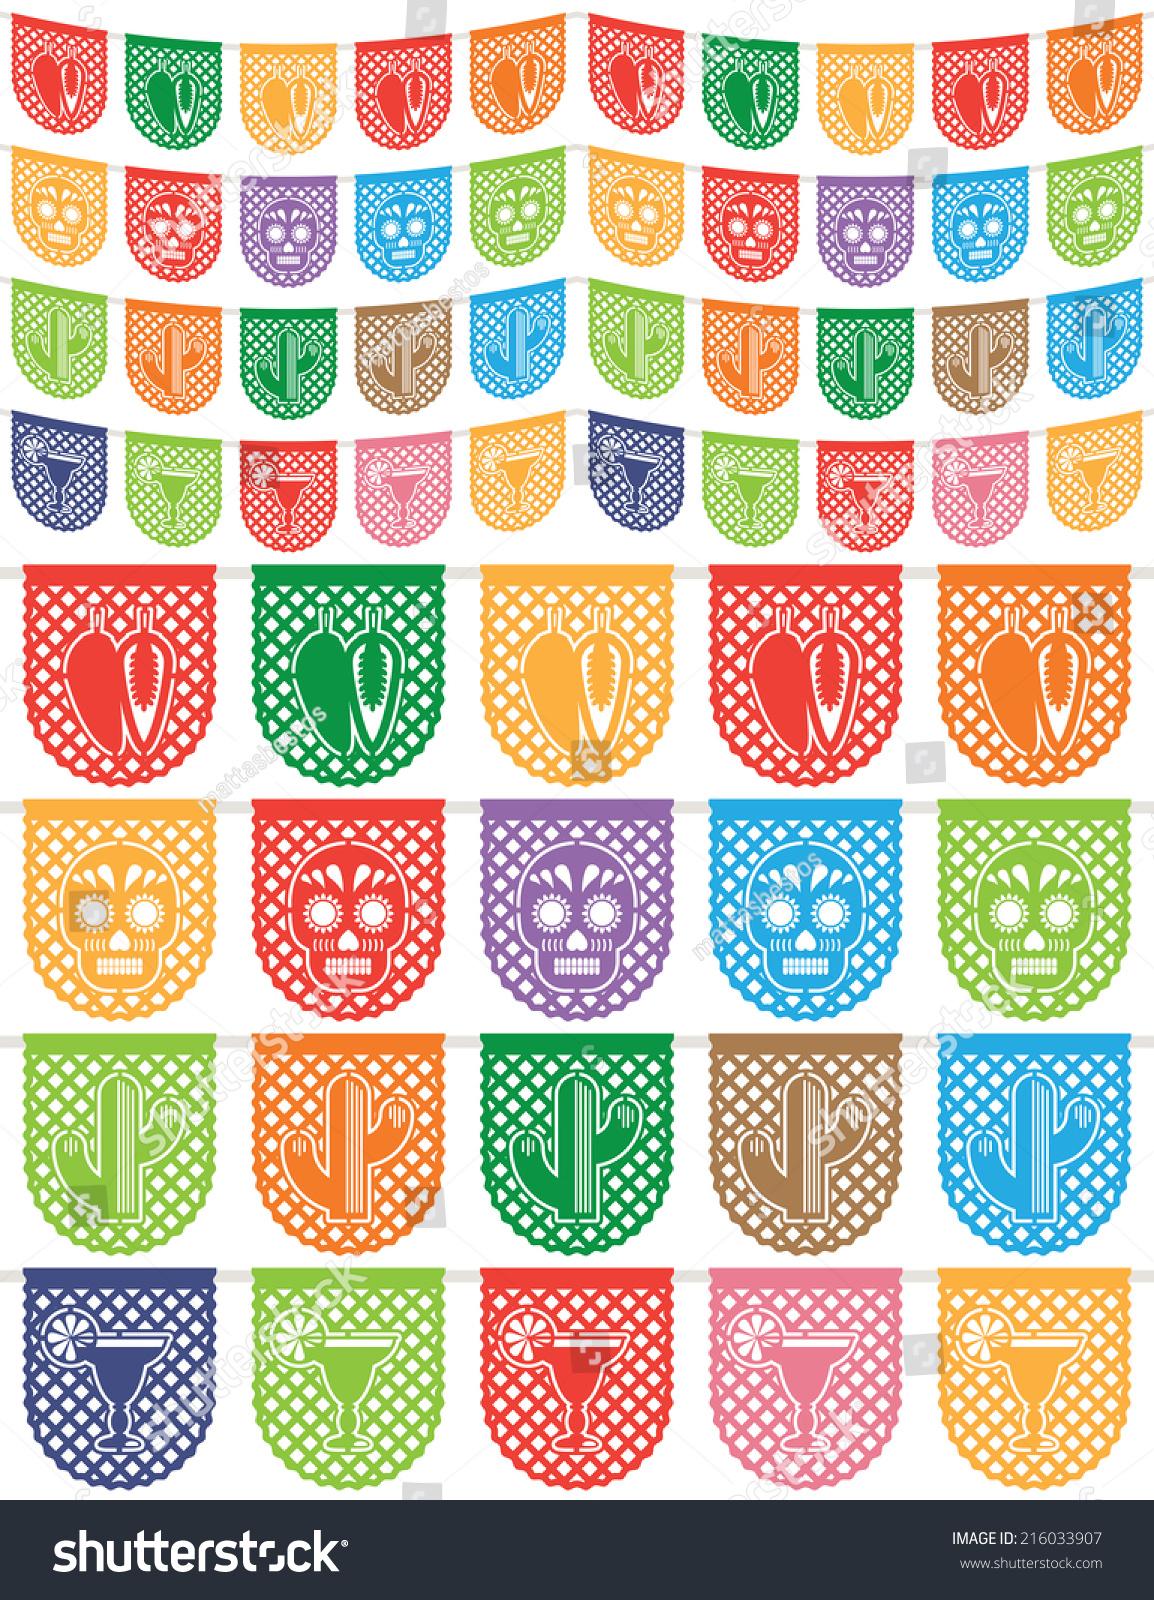 how to make papel picado with tissue paper